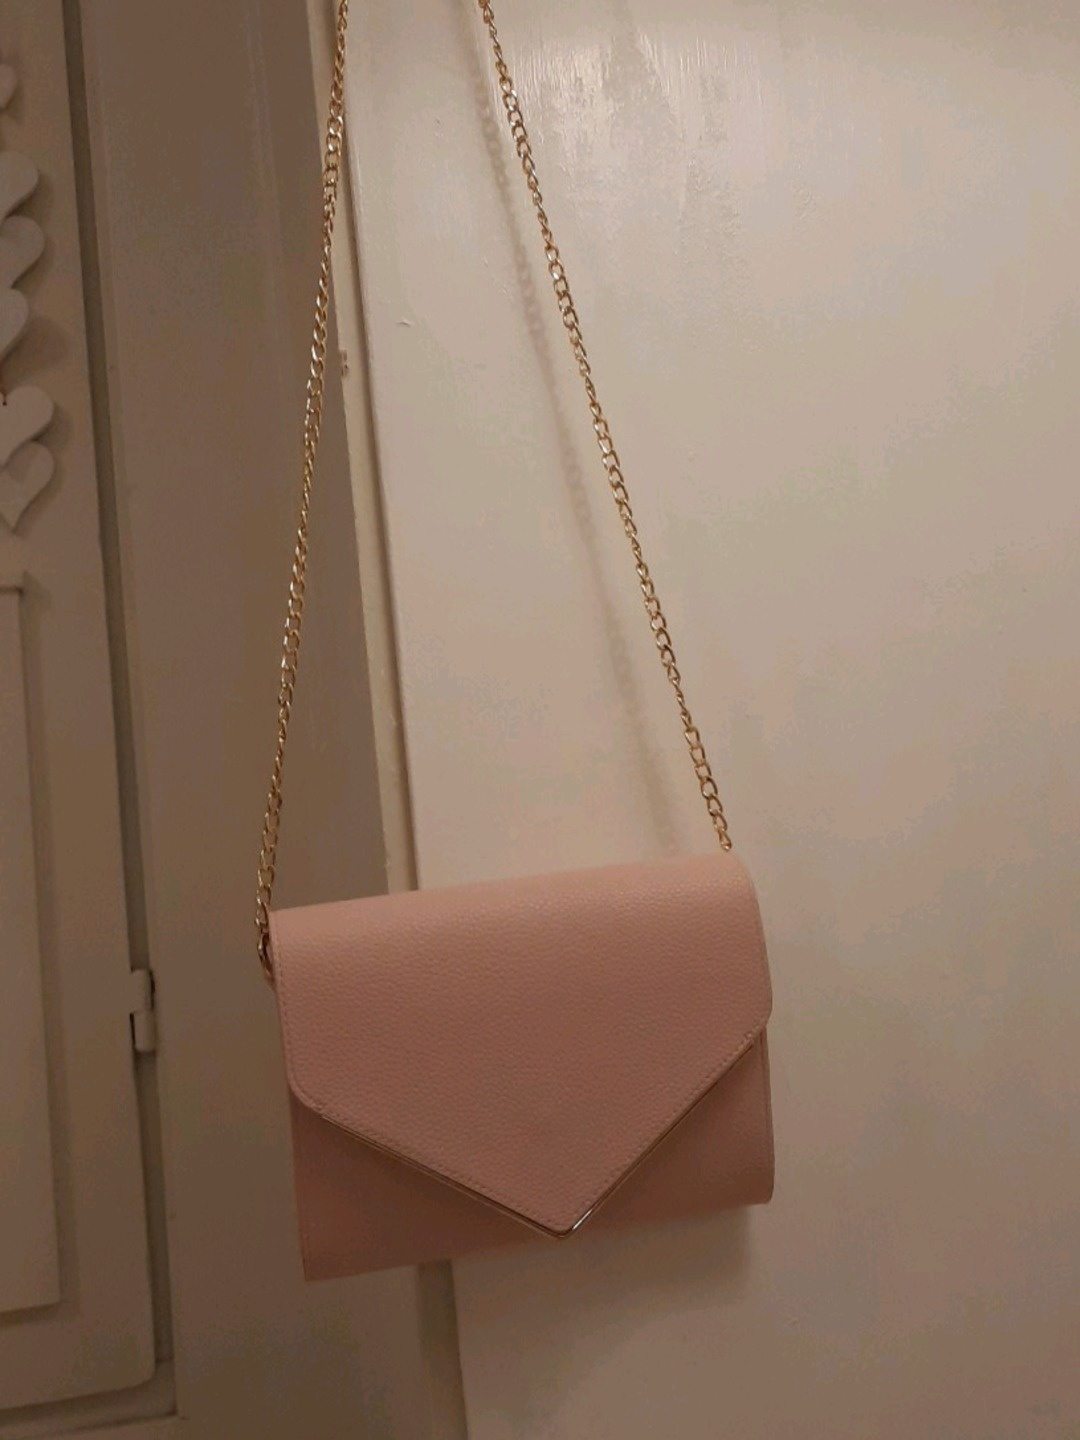 Women's bags & purses - ONLY photo 1